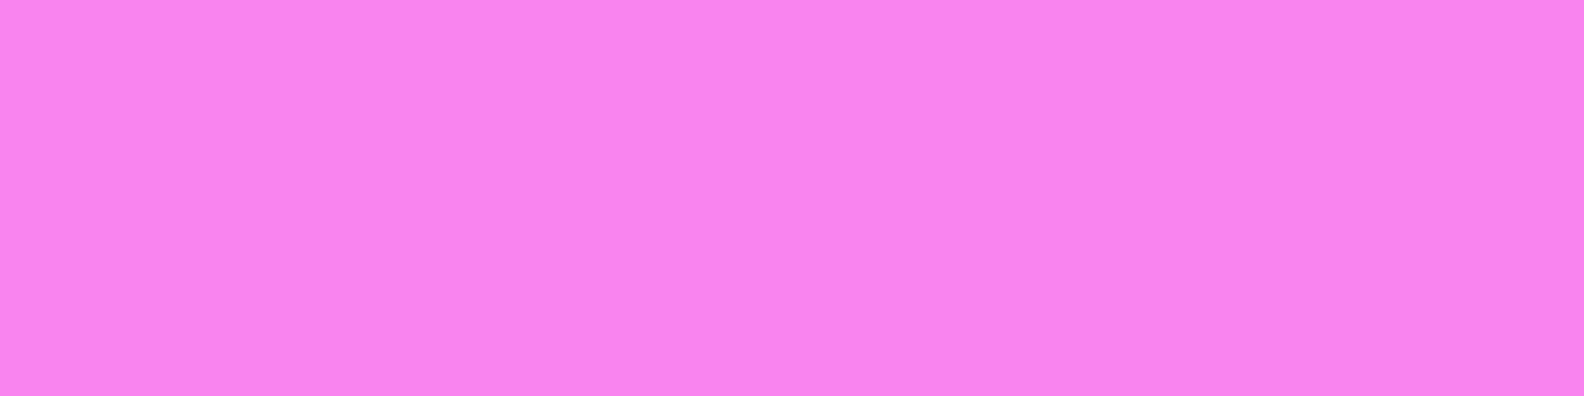 1584x396 Light Fuchsia Pink Solid Color Background